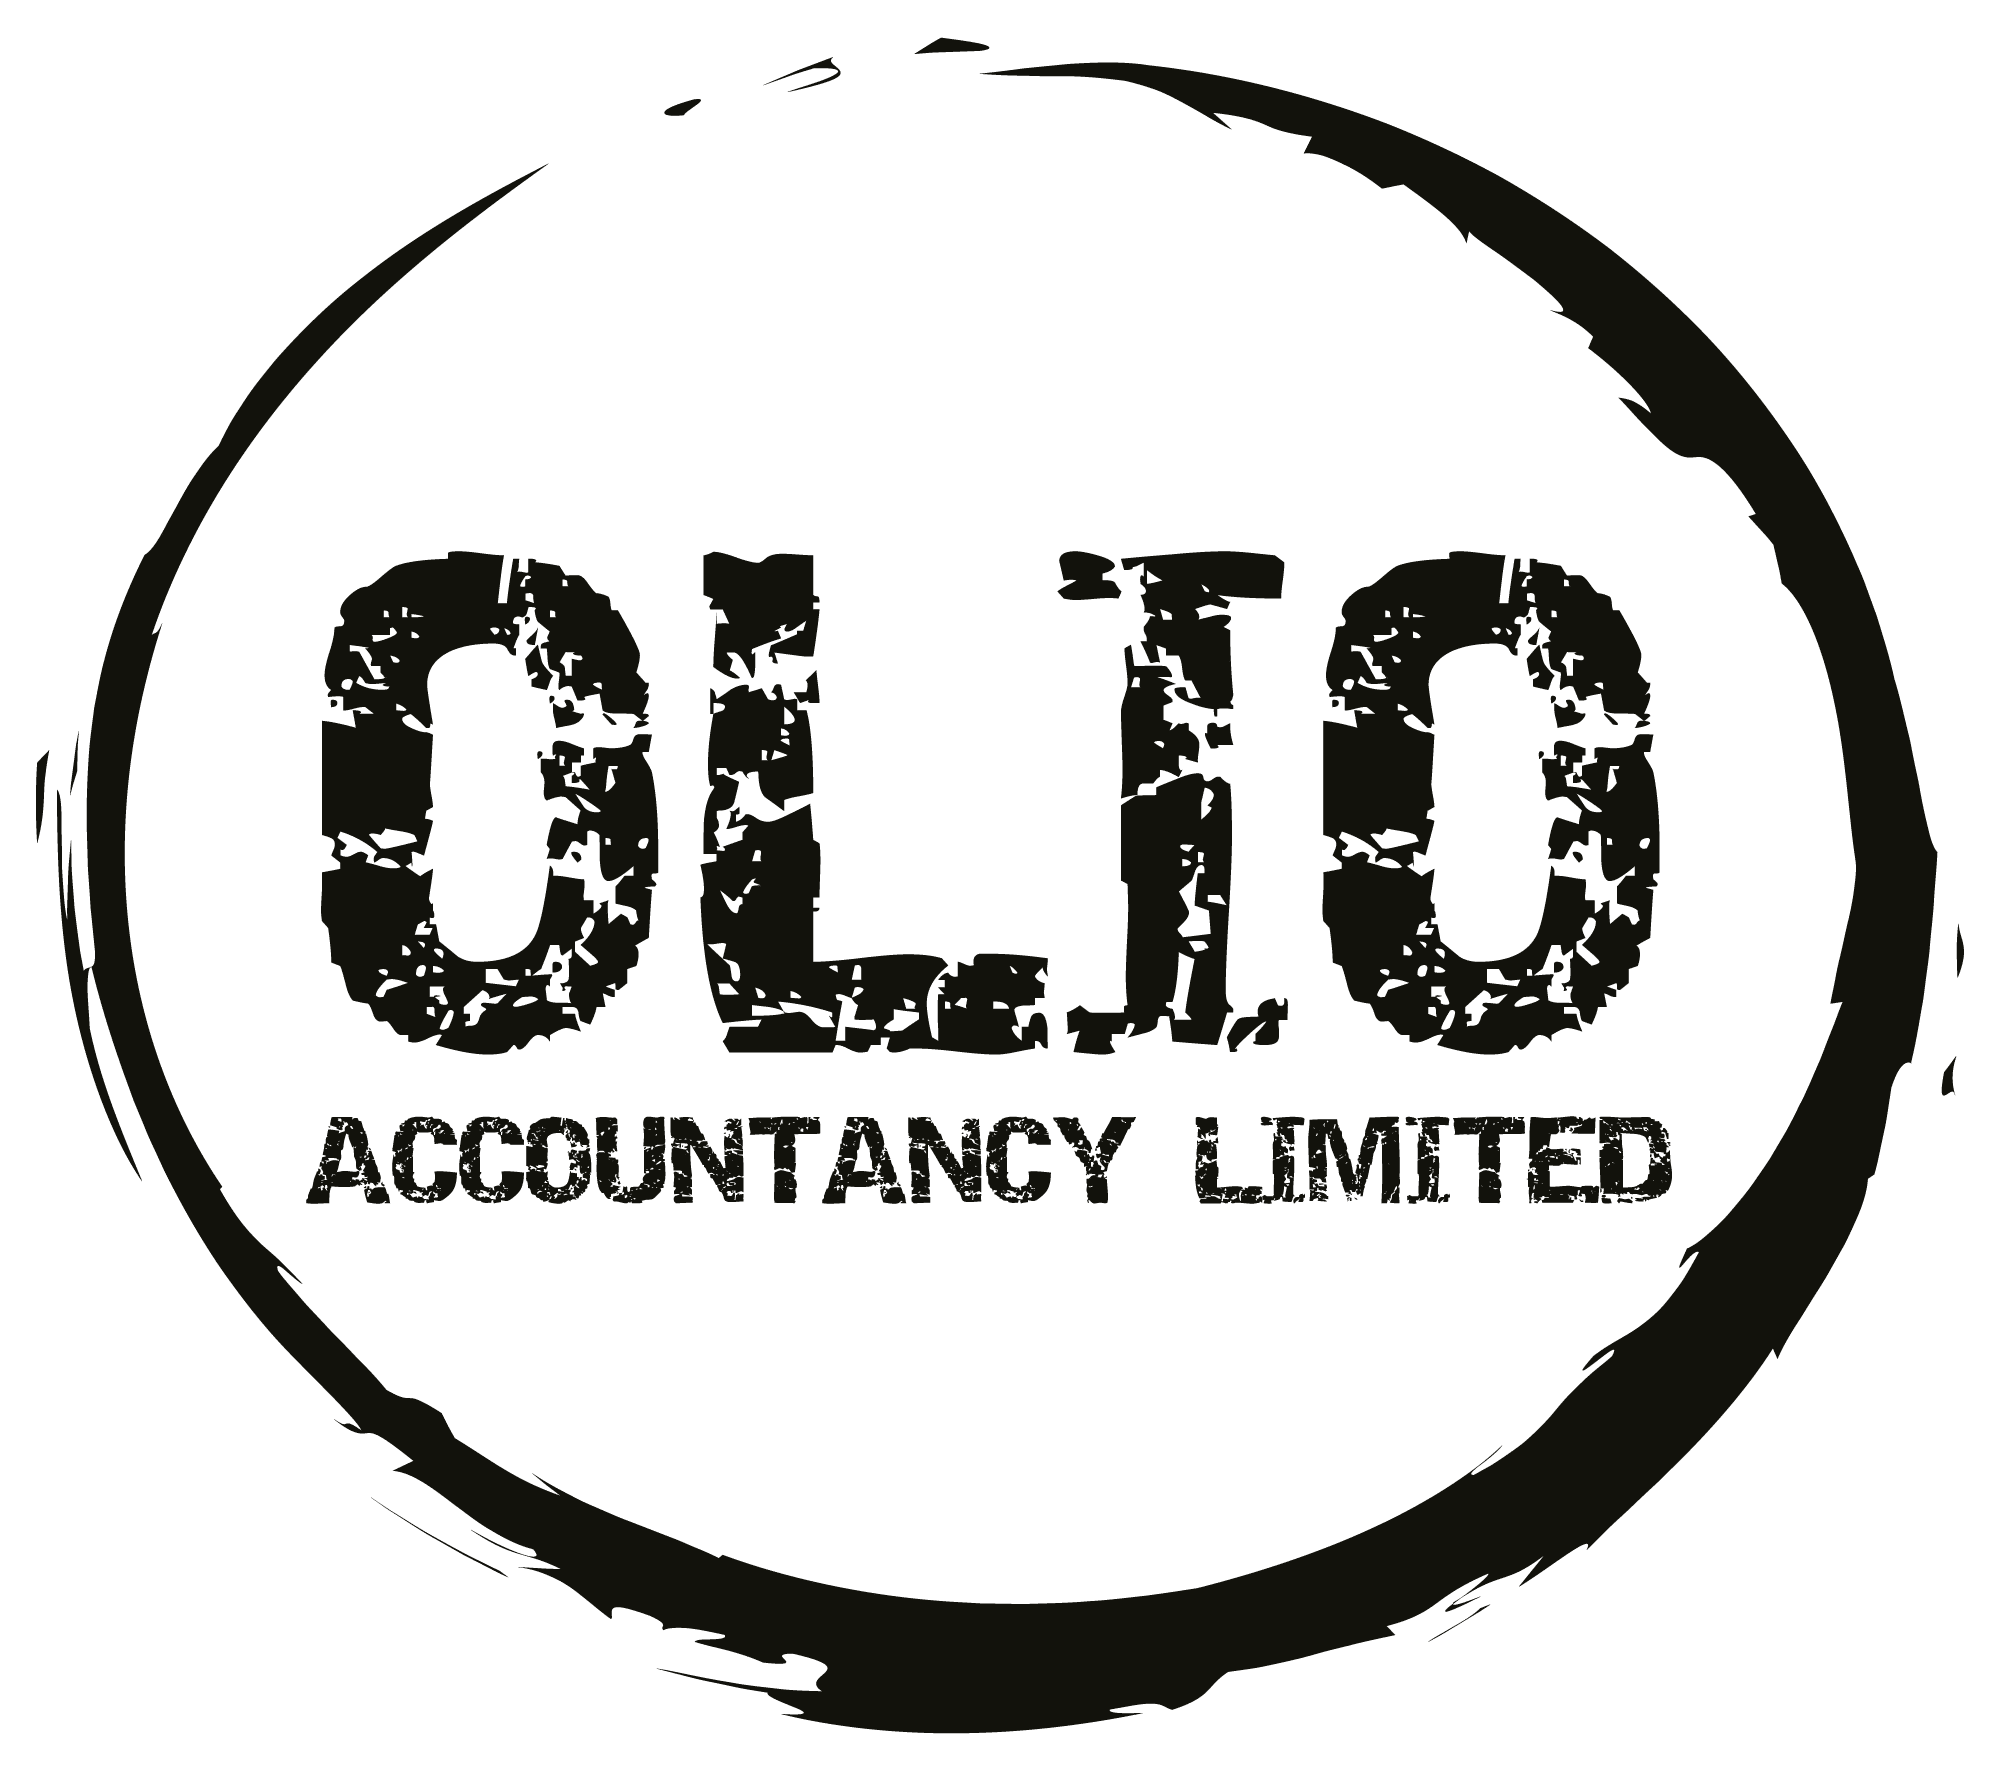 Olio Accountancy Limited